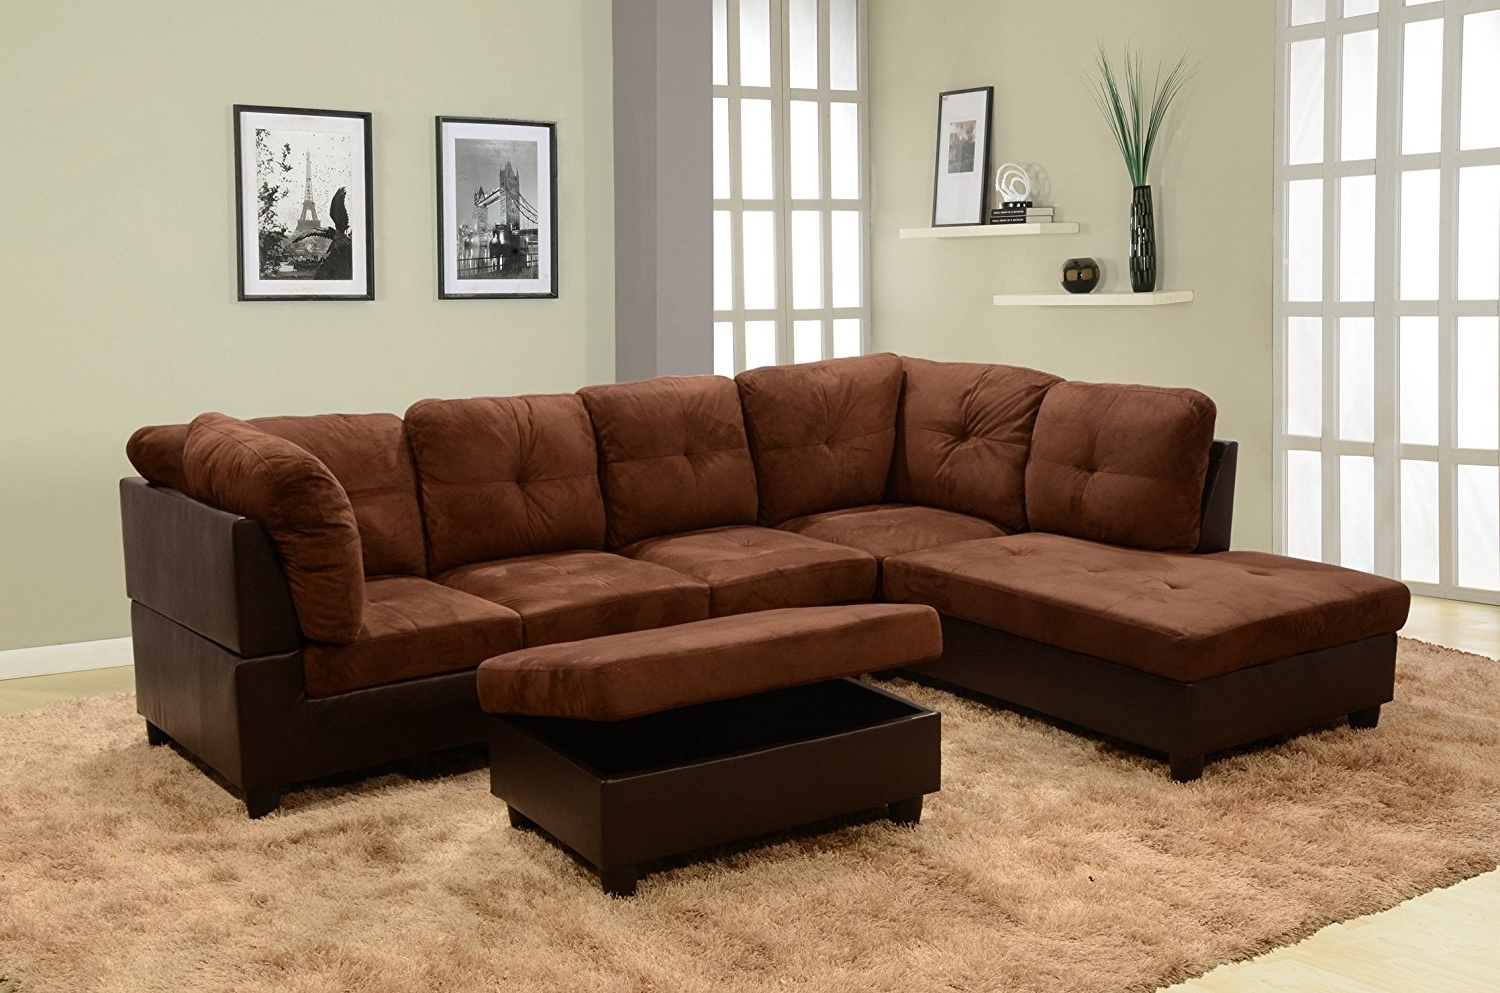 2017 Sectionals With Ottoman Intended For Amazon: Lifestyle Coffee 3 Piece Microfiber & Faux Leather (View 1 of 15)